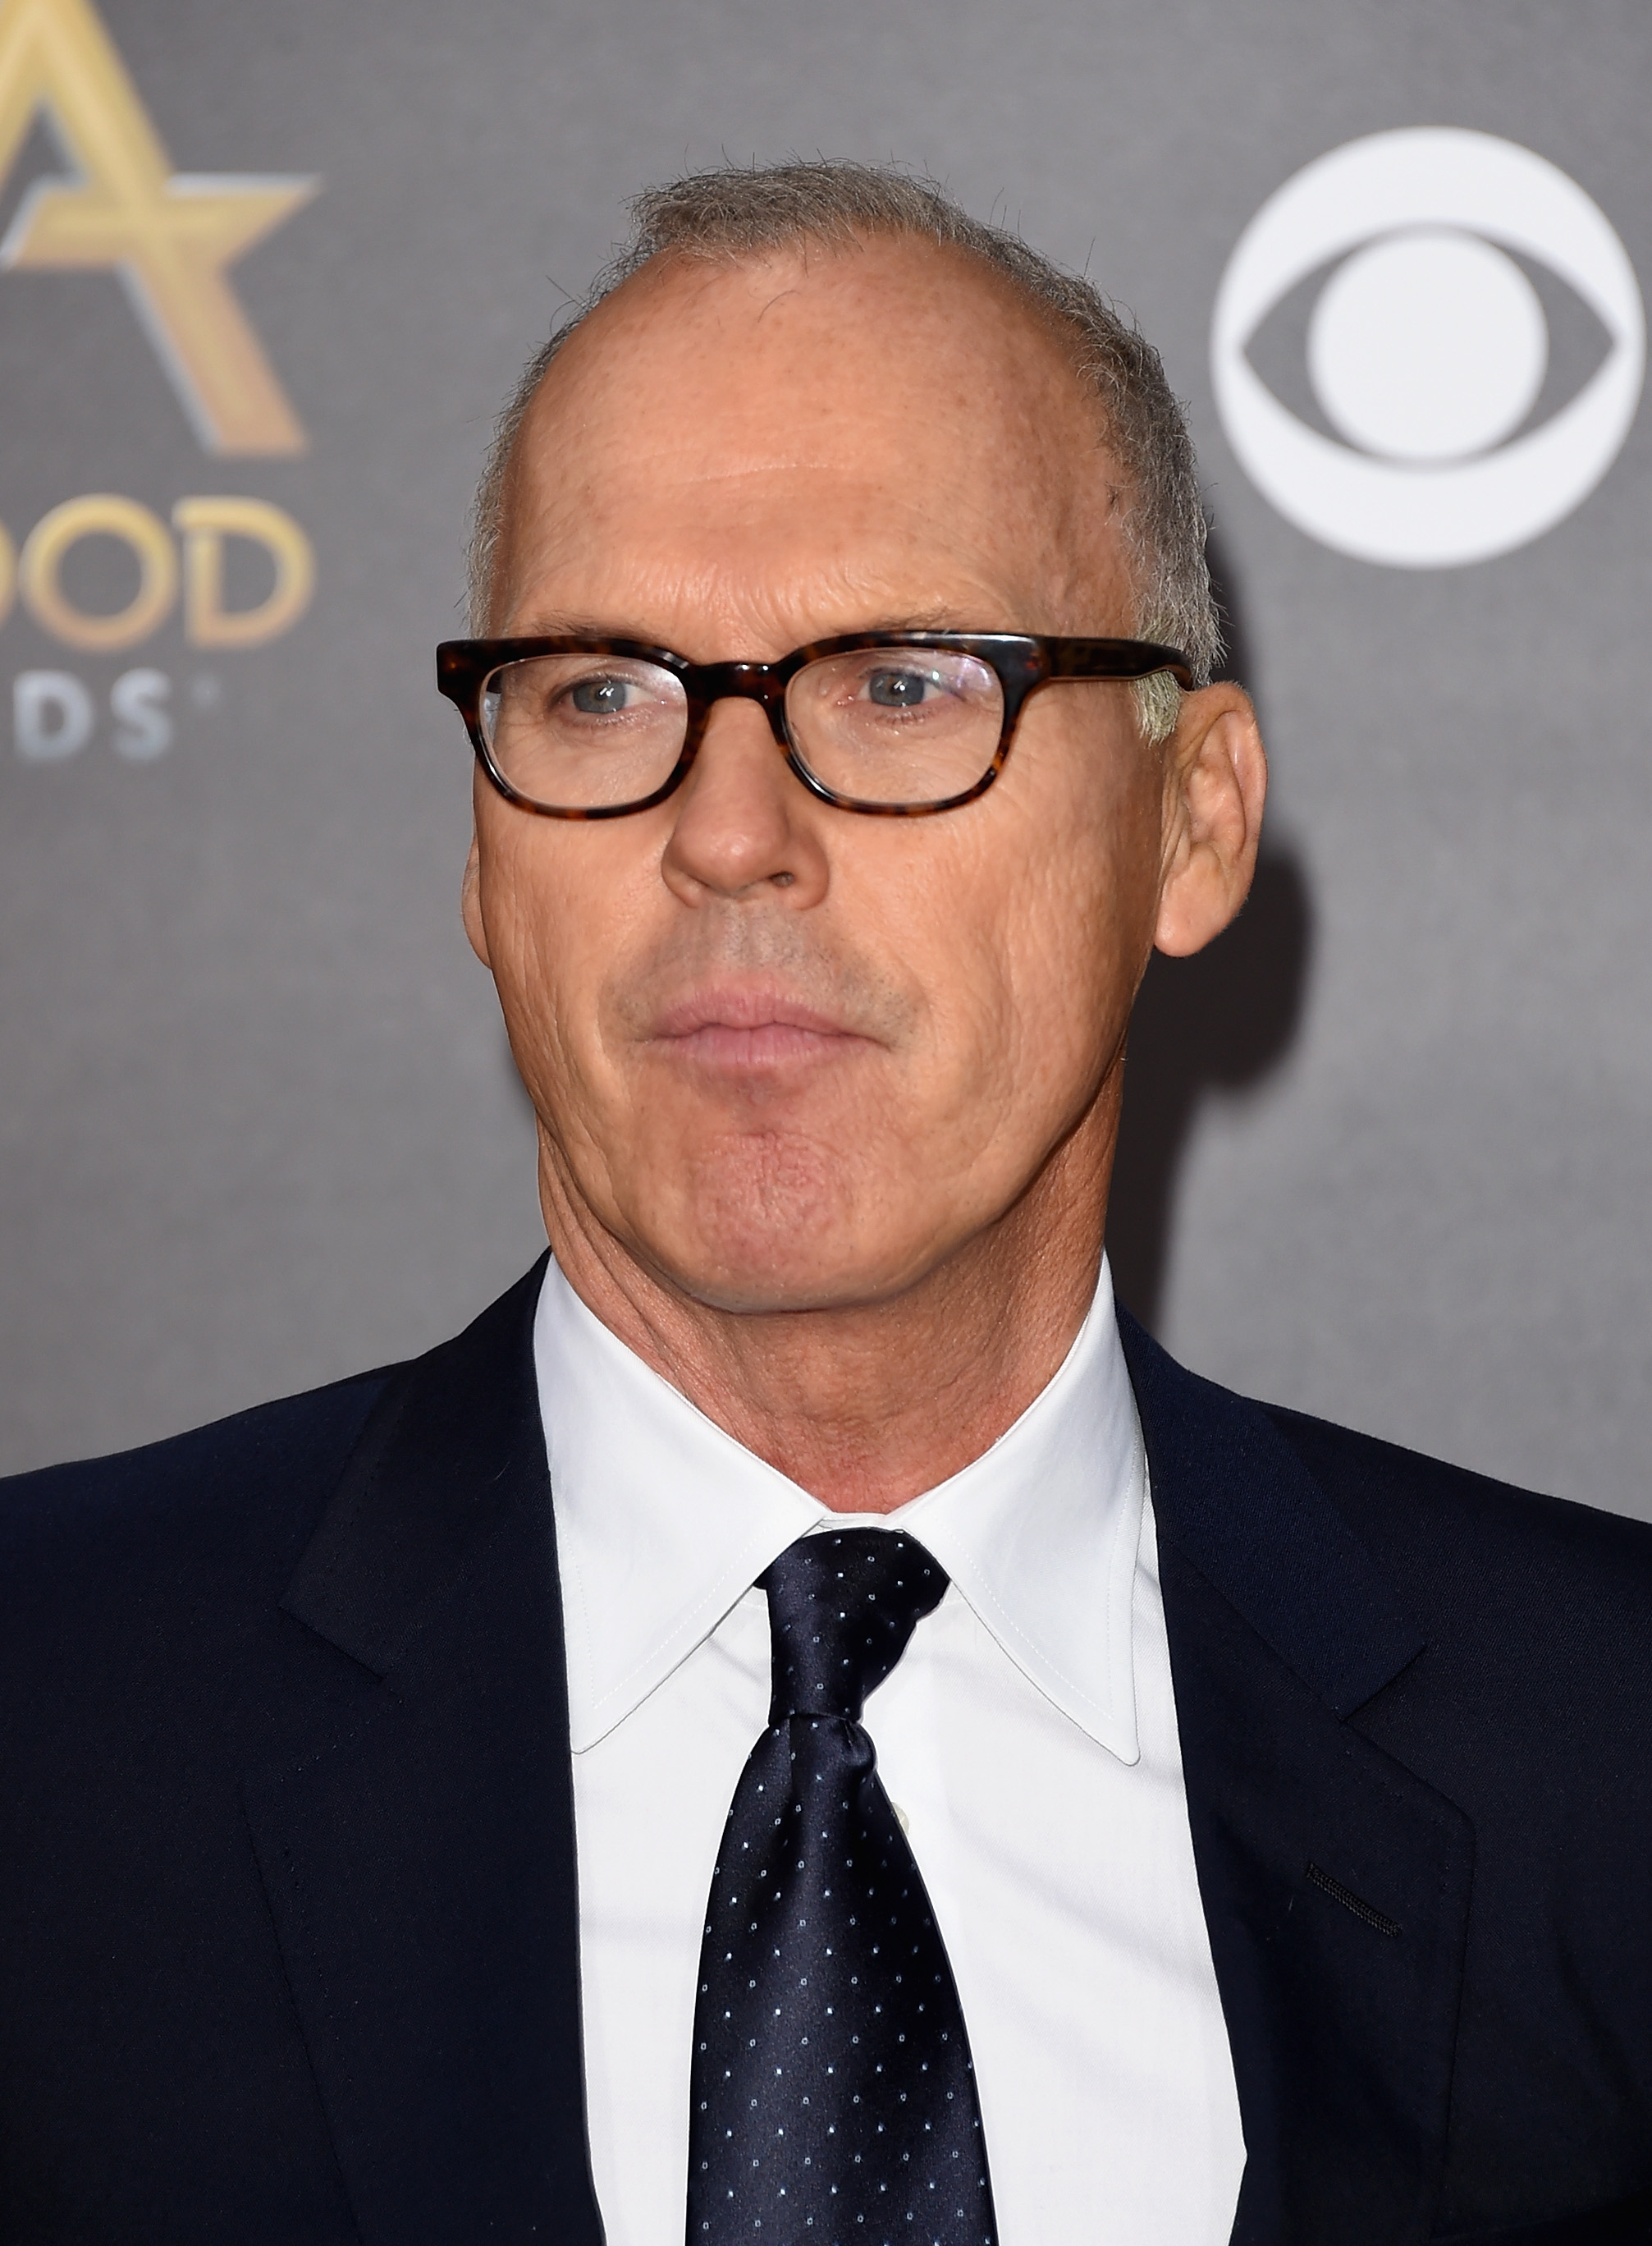 Actor Michael Keaton attends the 18th Annual Hollywood Film Awards at The Palladium